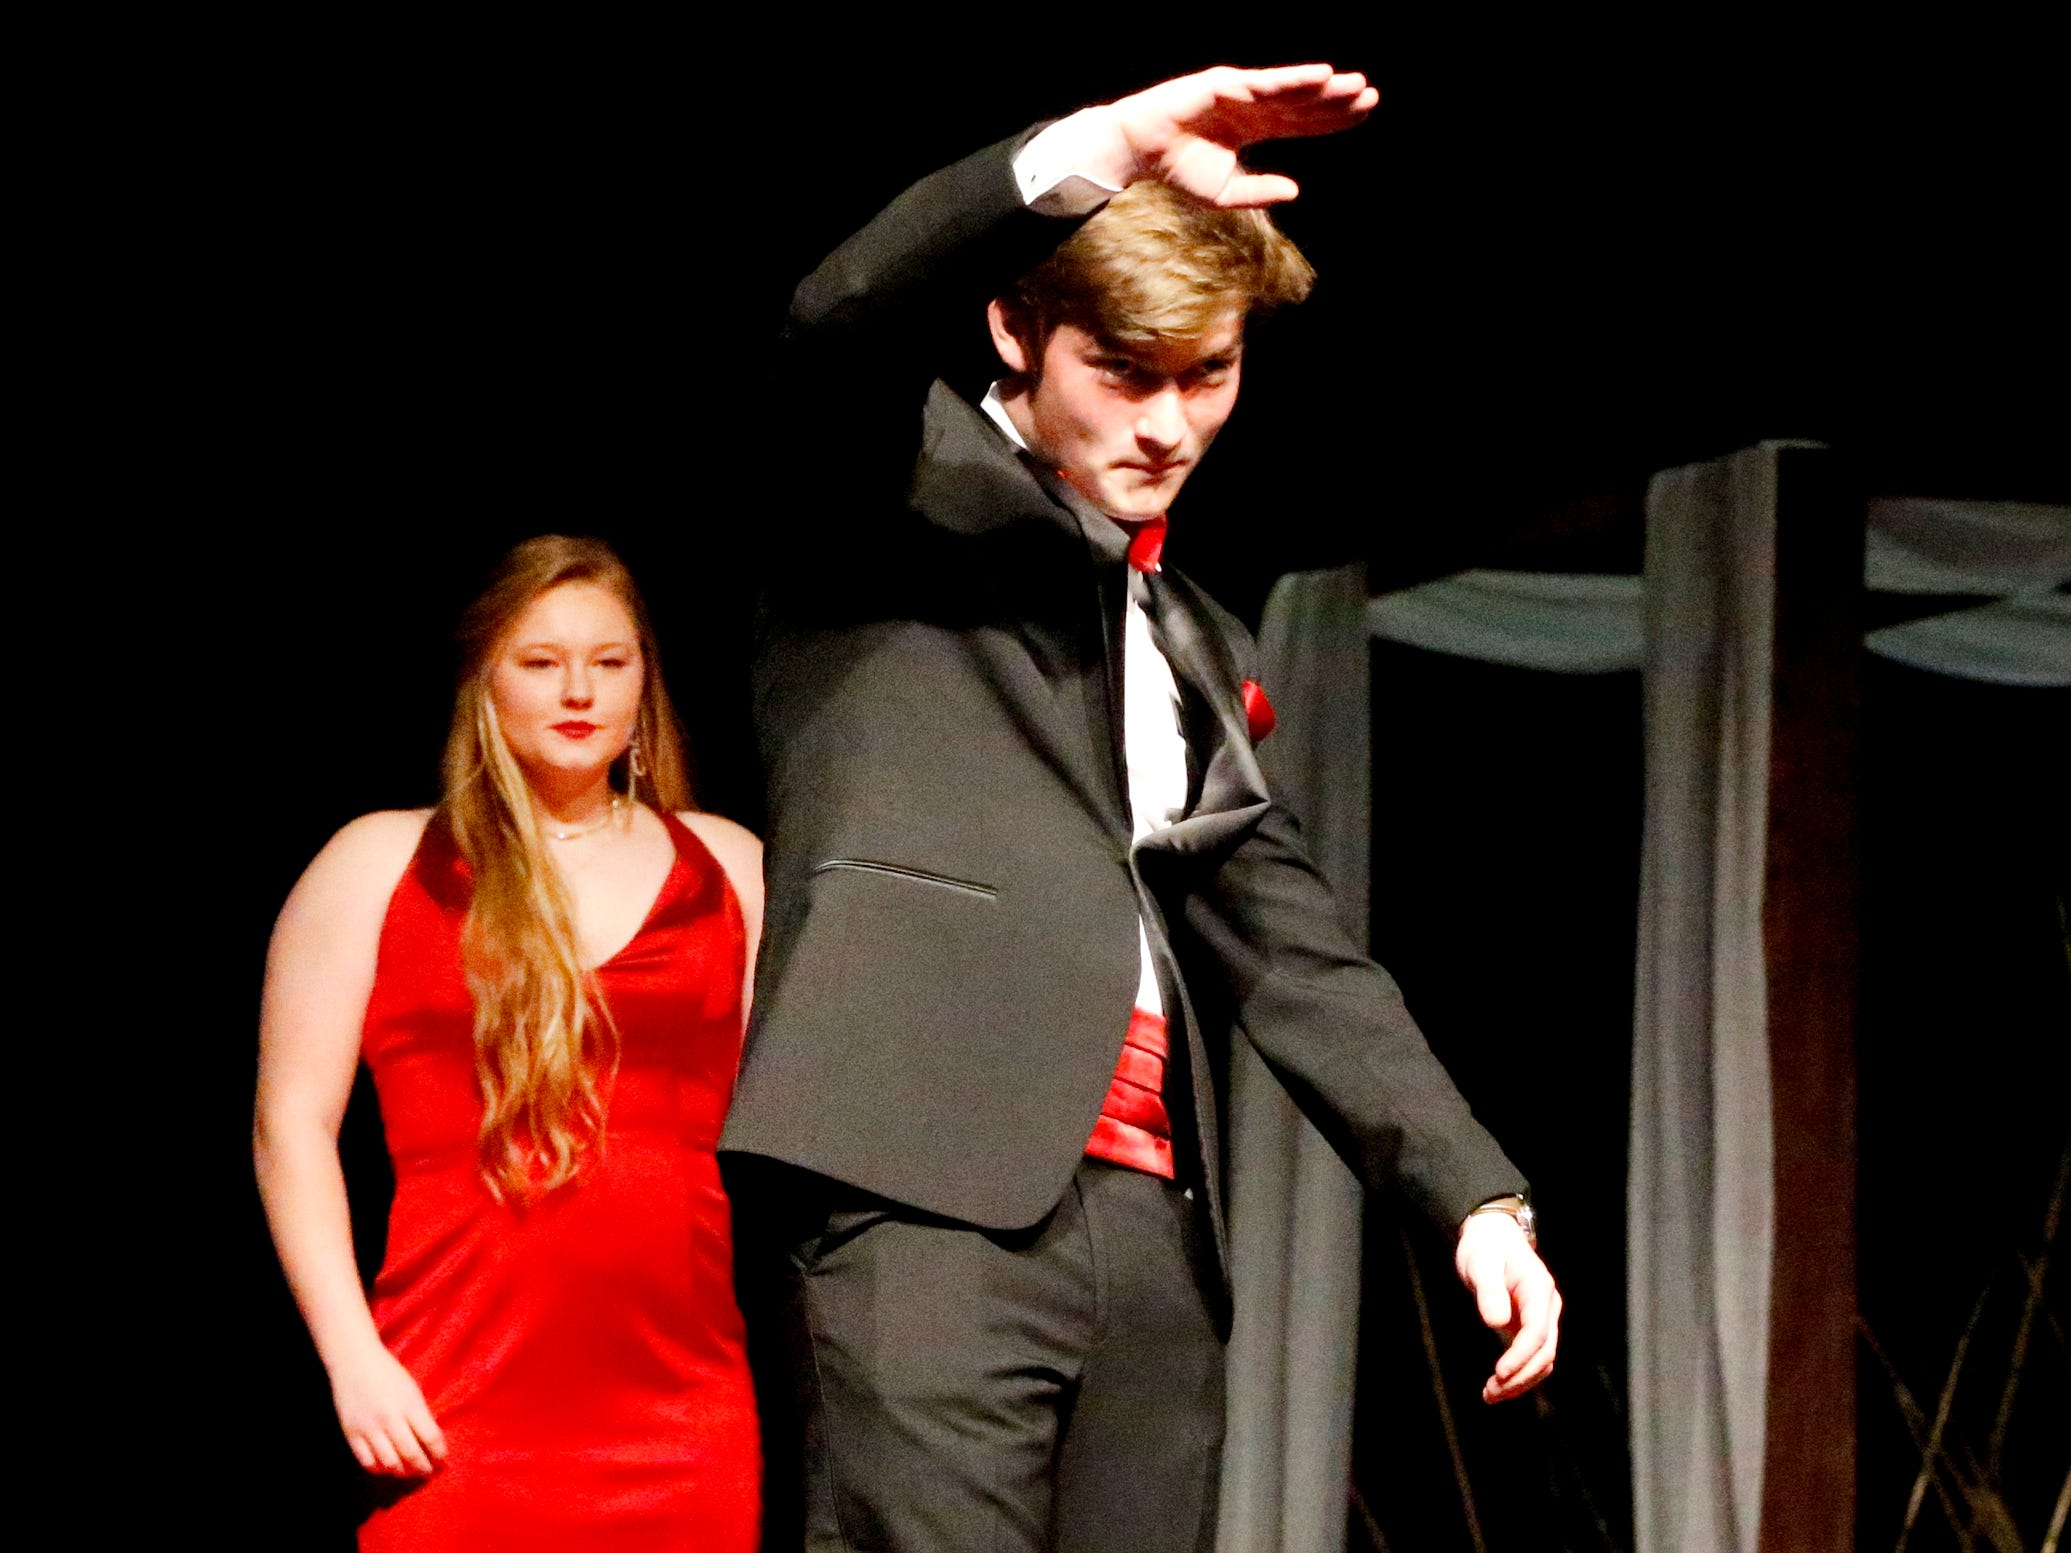 Jackson Jordan shows off his tux at the end of the runway during the Siegel Prom Fashion show on Thursday, Feb. 14, 2019.